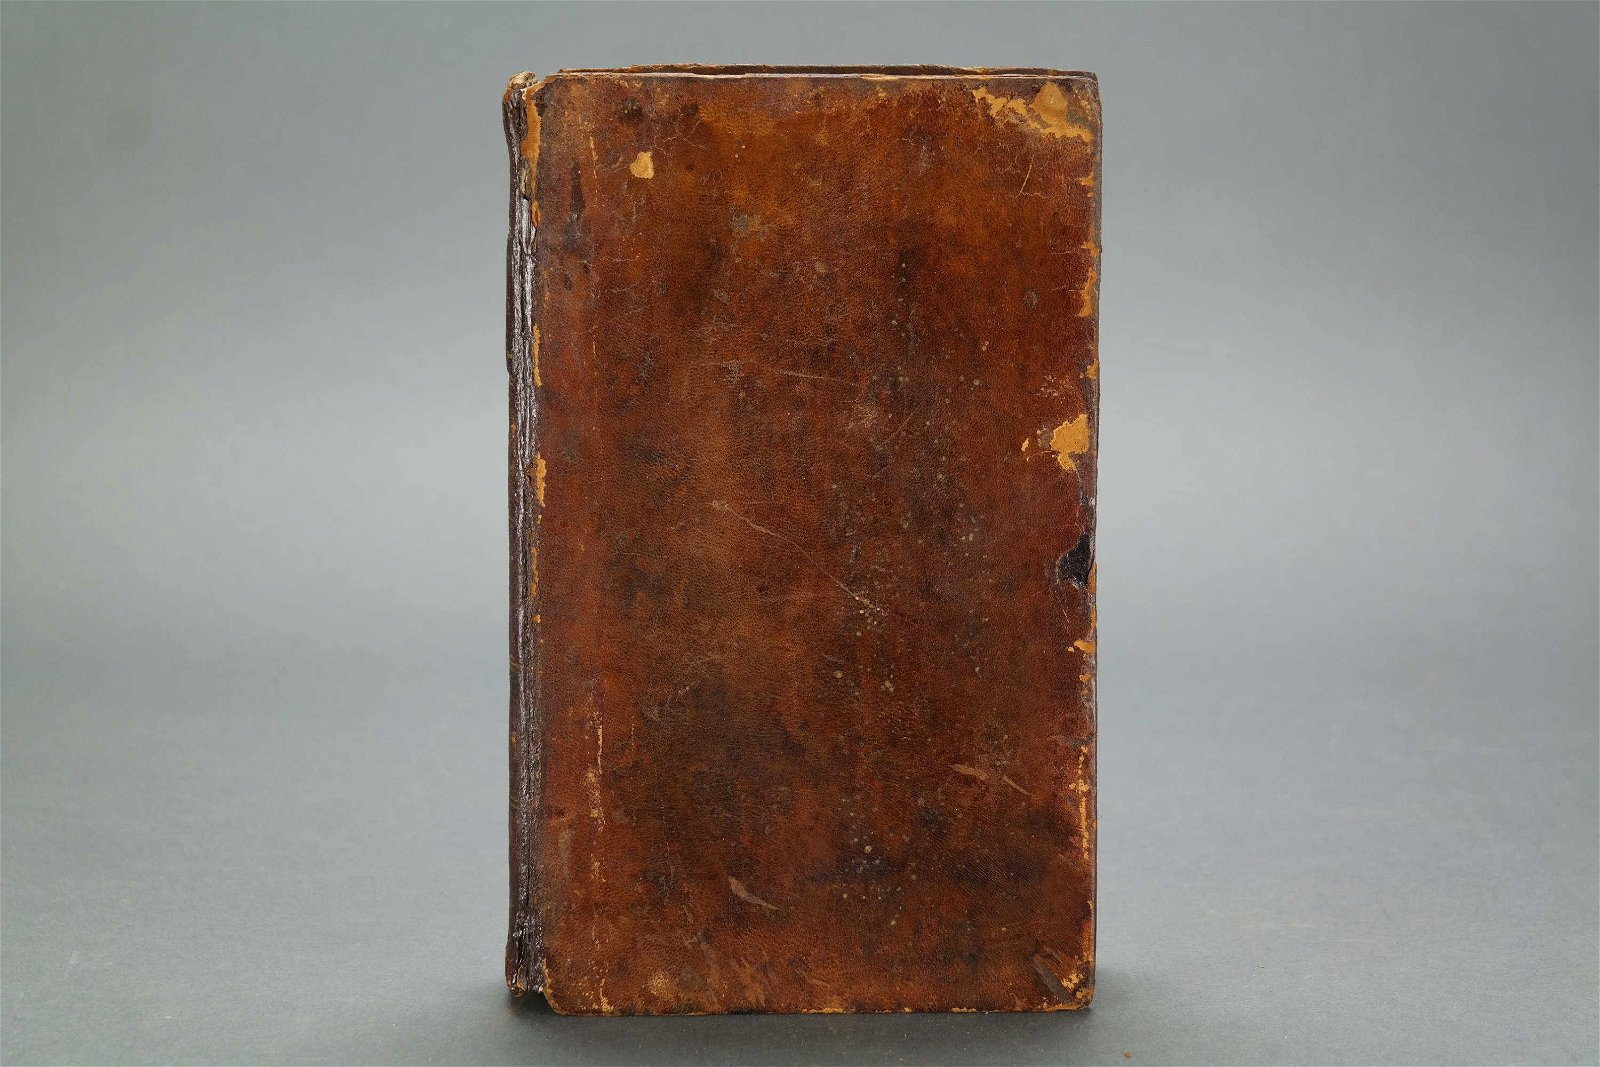 2 vols. The Federalist Papers. 2nd ed. 1802.